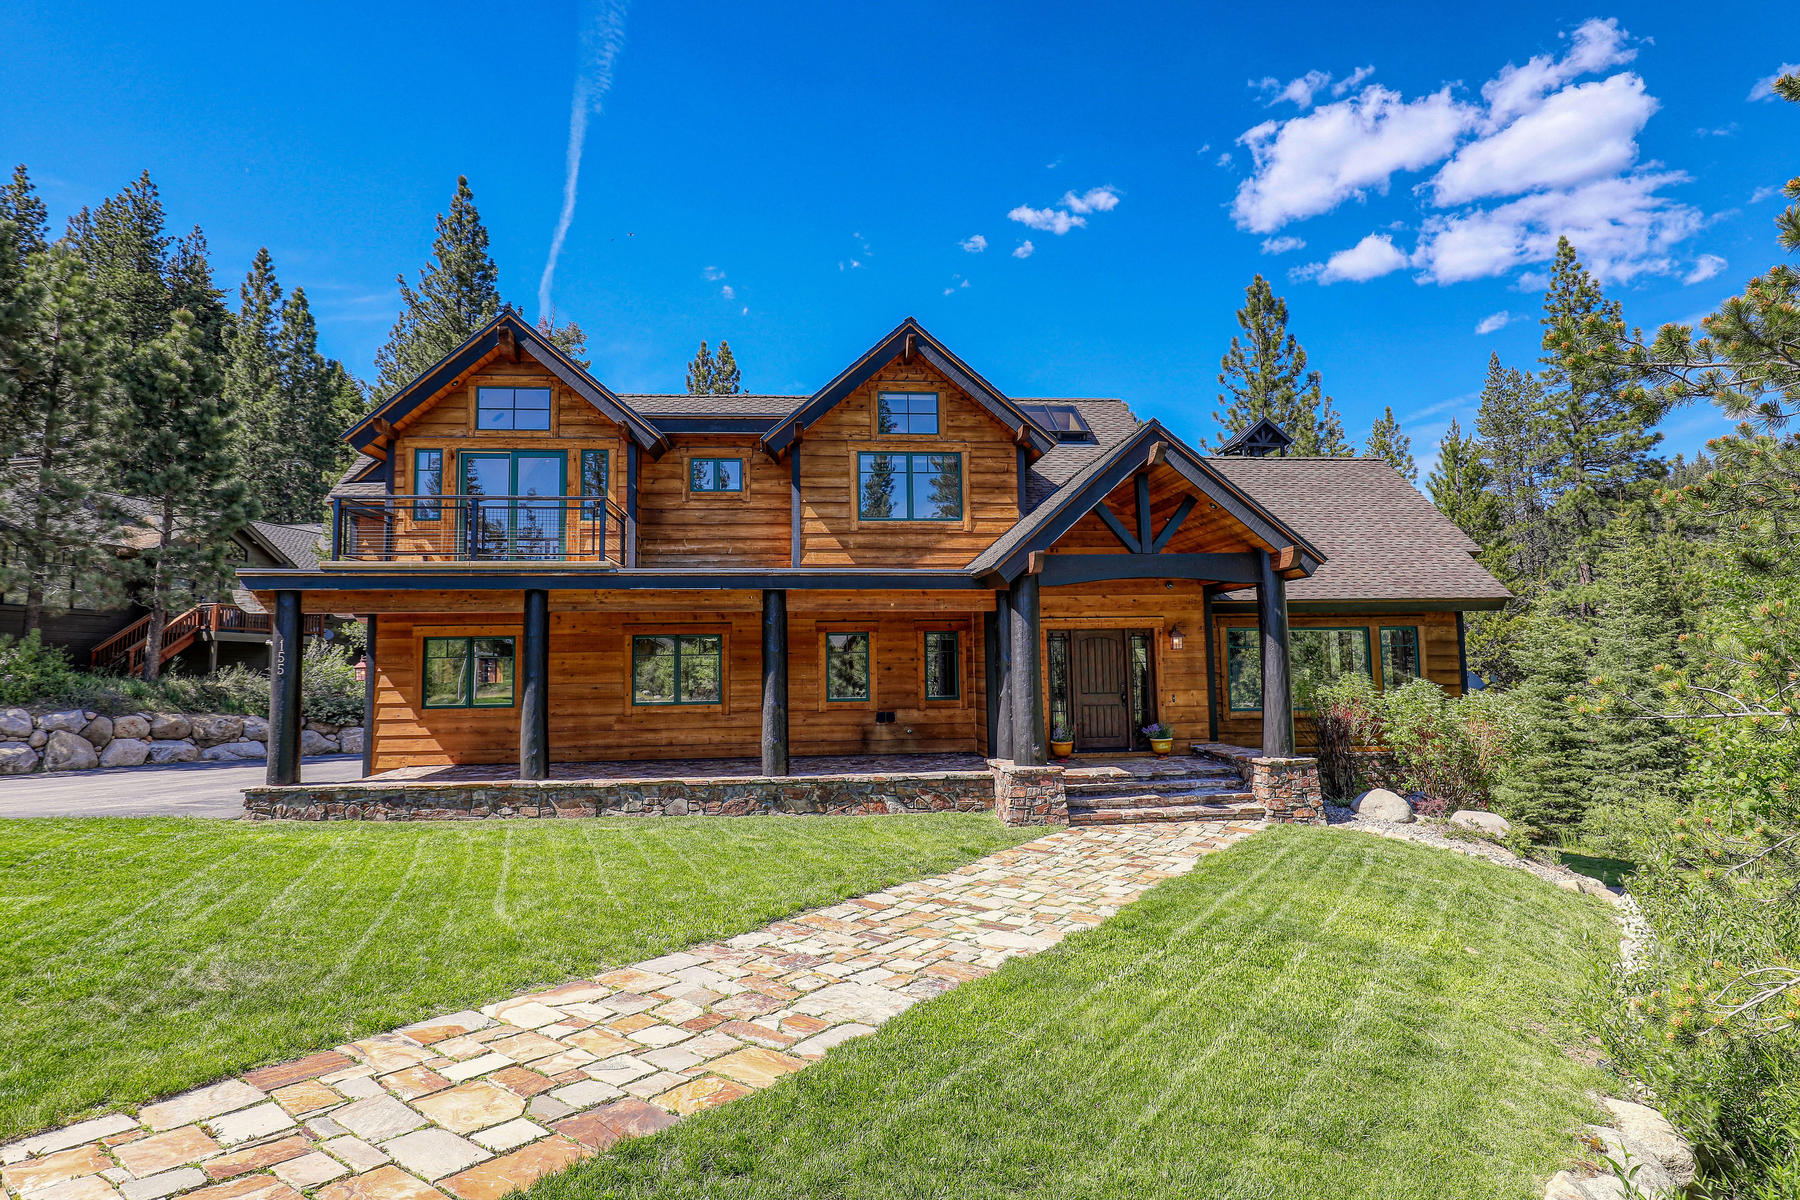 Single Family Homes for Active at Stunning Views of Painted Rock 155 Painted Rock Court Olympic Valley, California 96146 United States